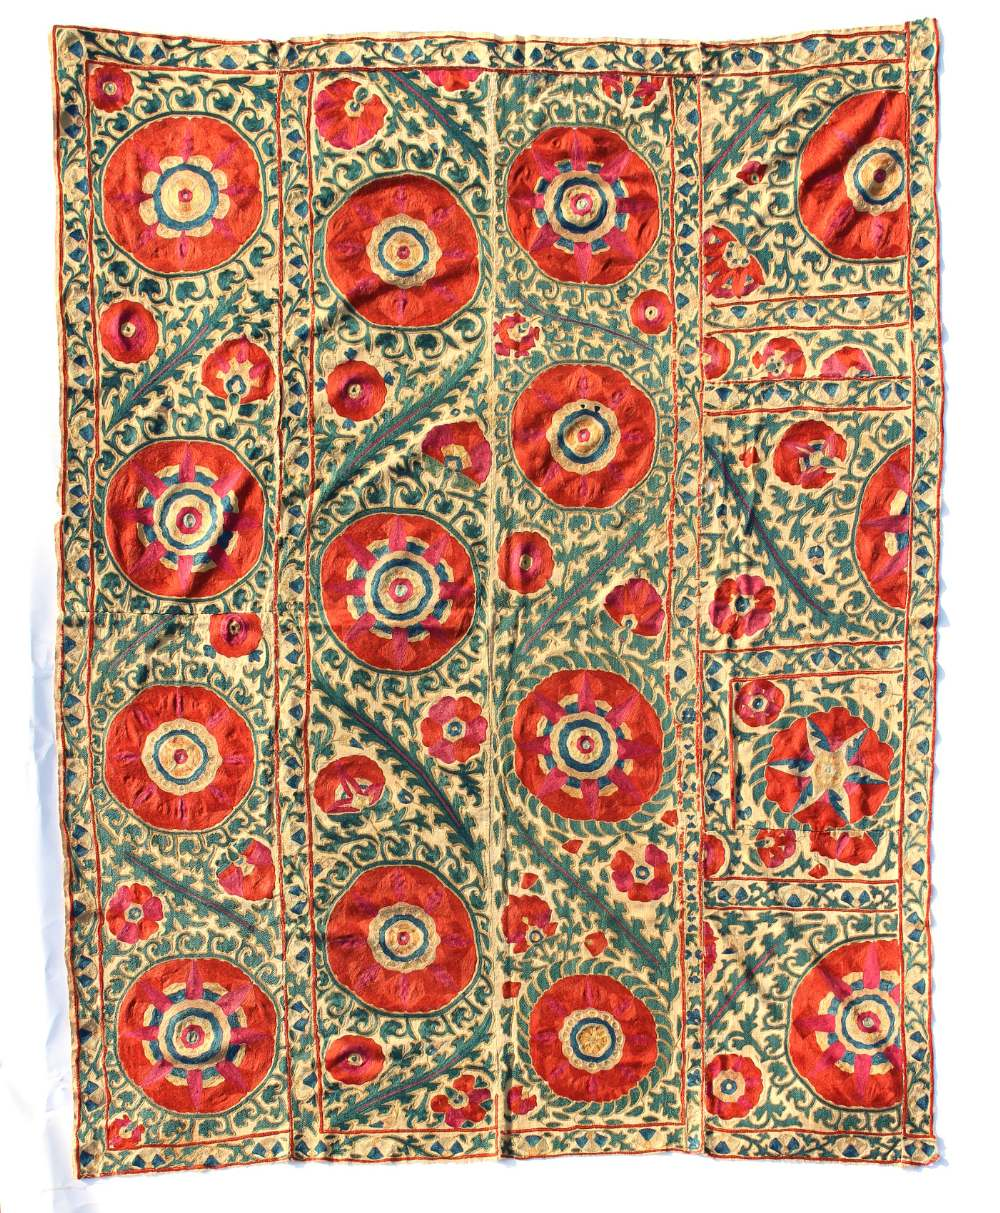 Lot 15 - Property of a lady - an antique susani, Uzbekistan, late 19th century, 67 by 52ins. (171 by 133cms.)